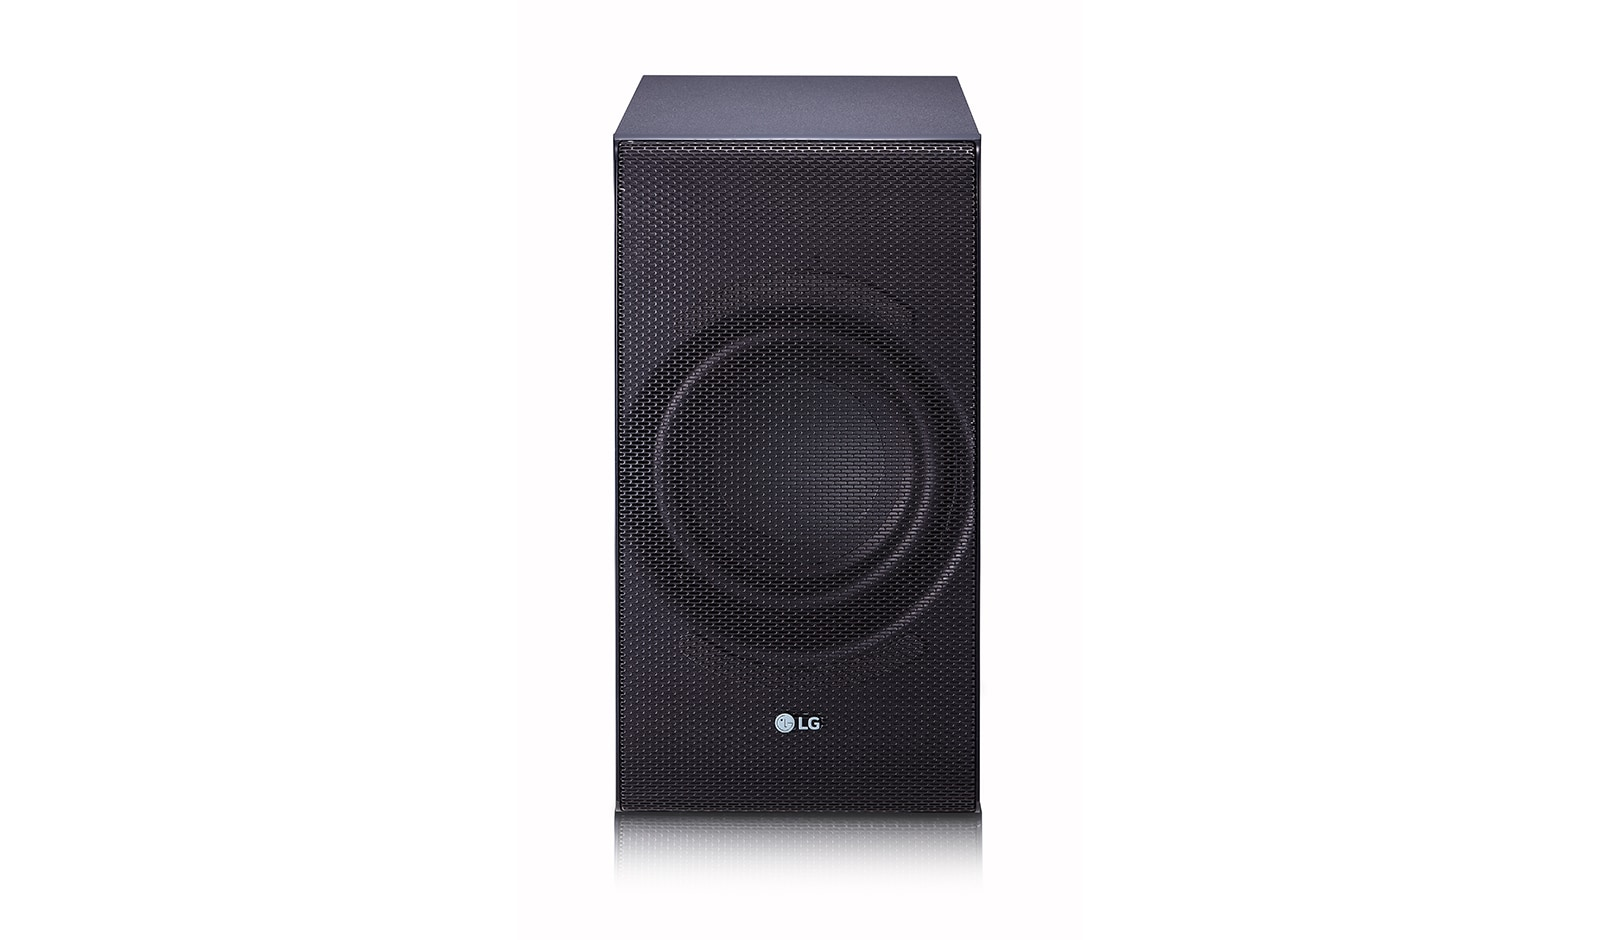 LG High-Resolution Sound Bar SJ8 4.1ch 300W with Wireless Subwoofer ...